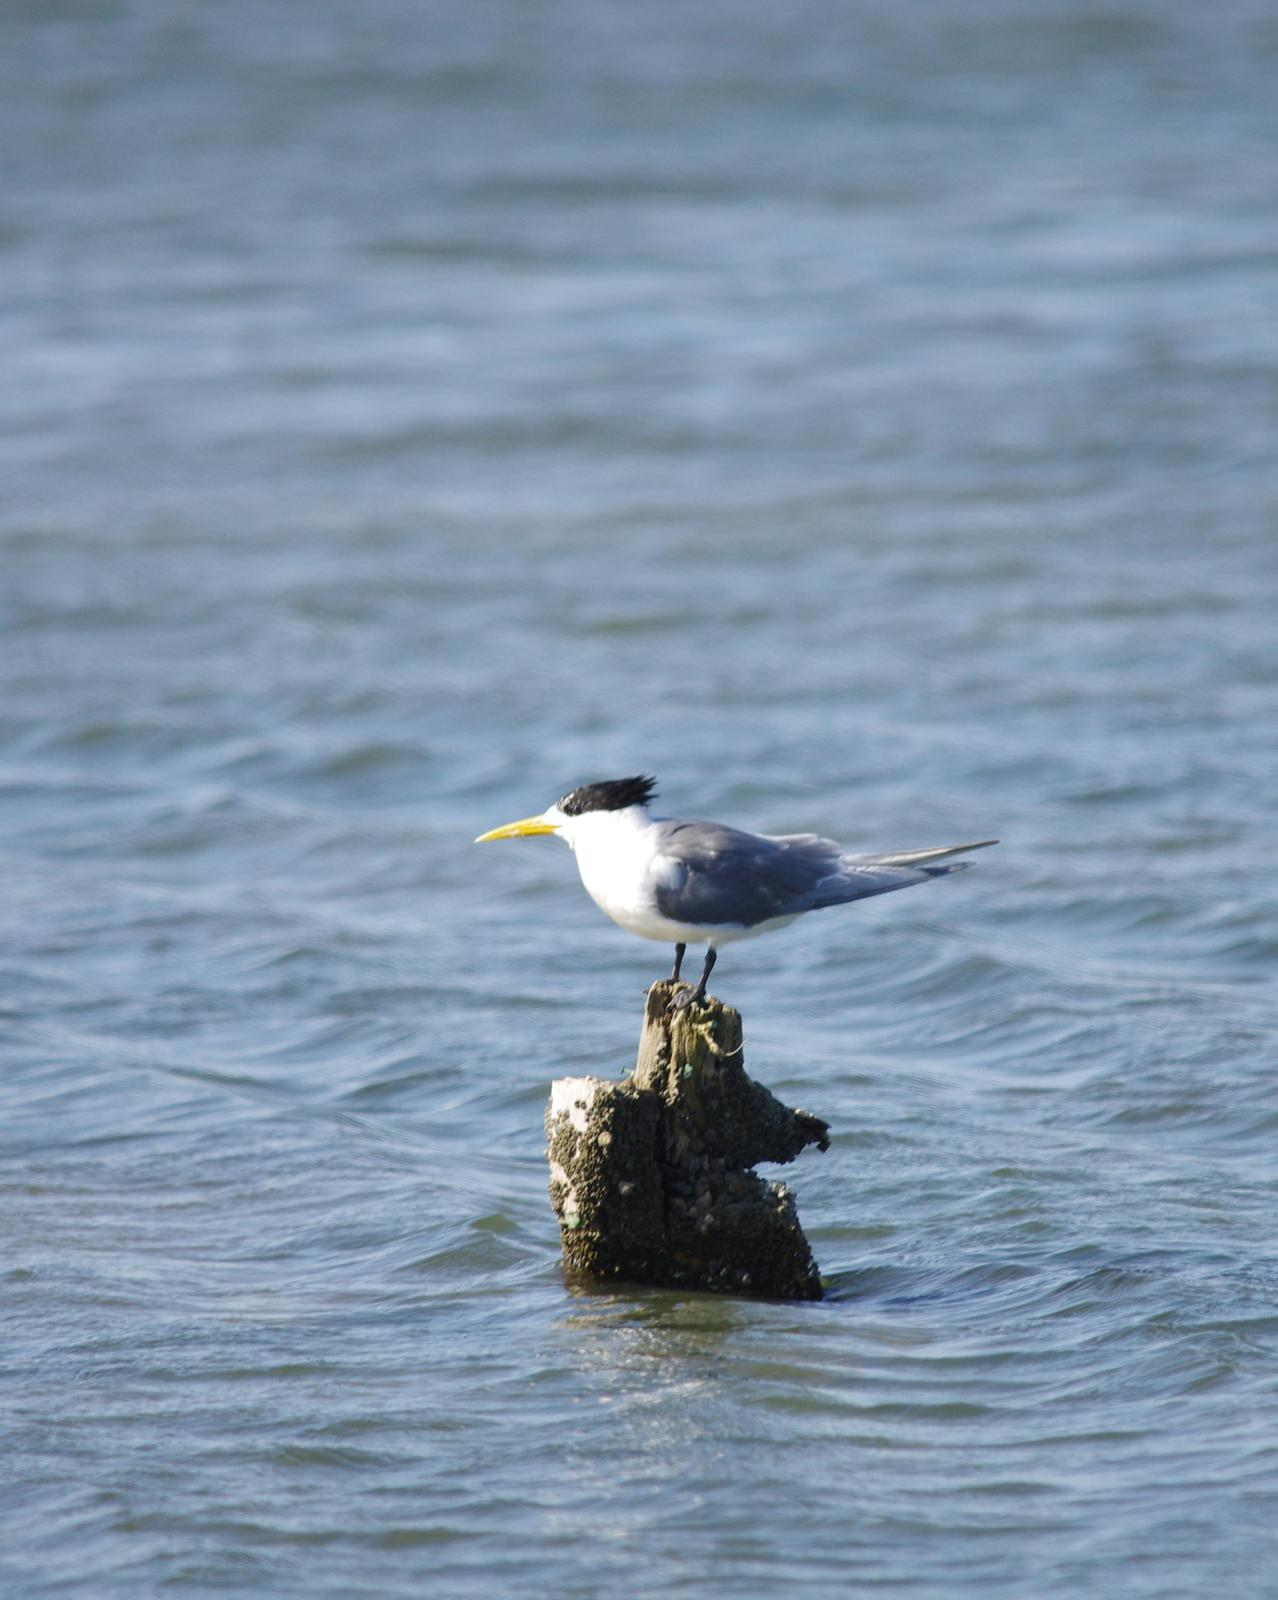 Great Crested Tern Photo by Richard Lund